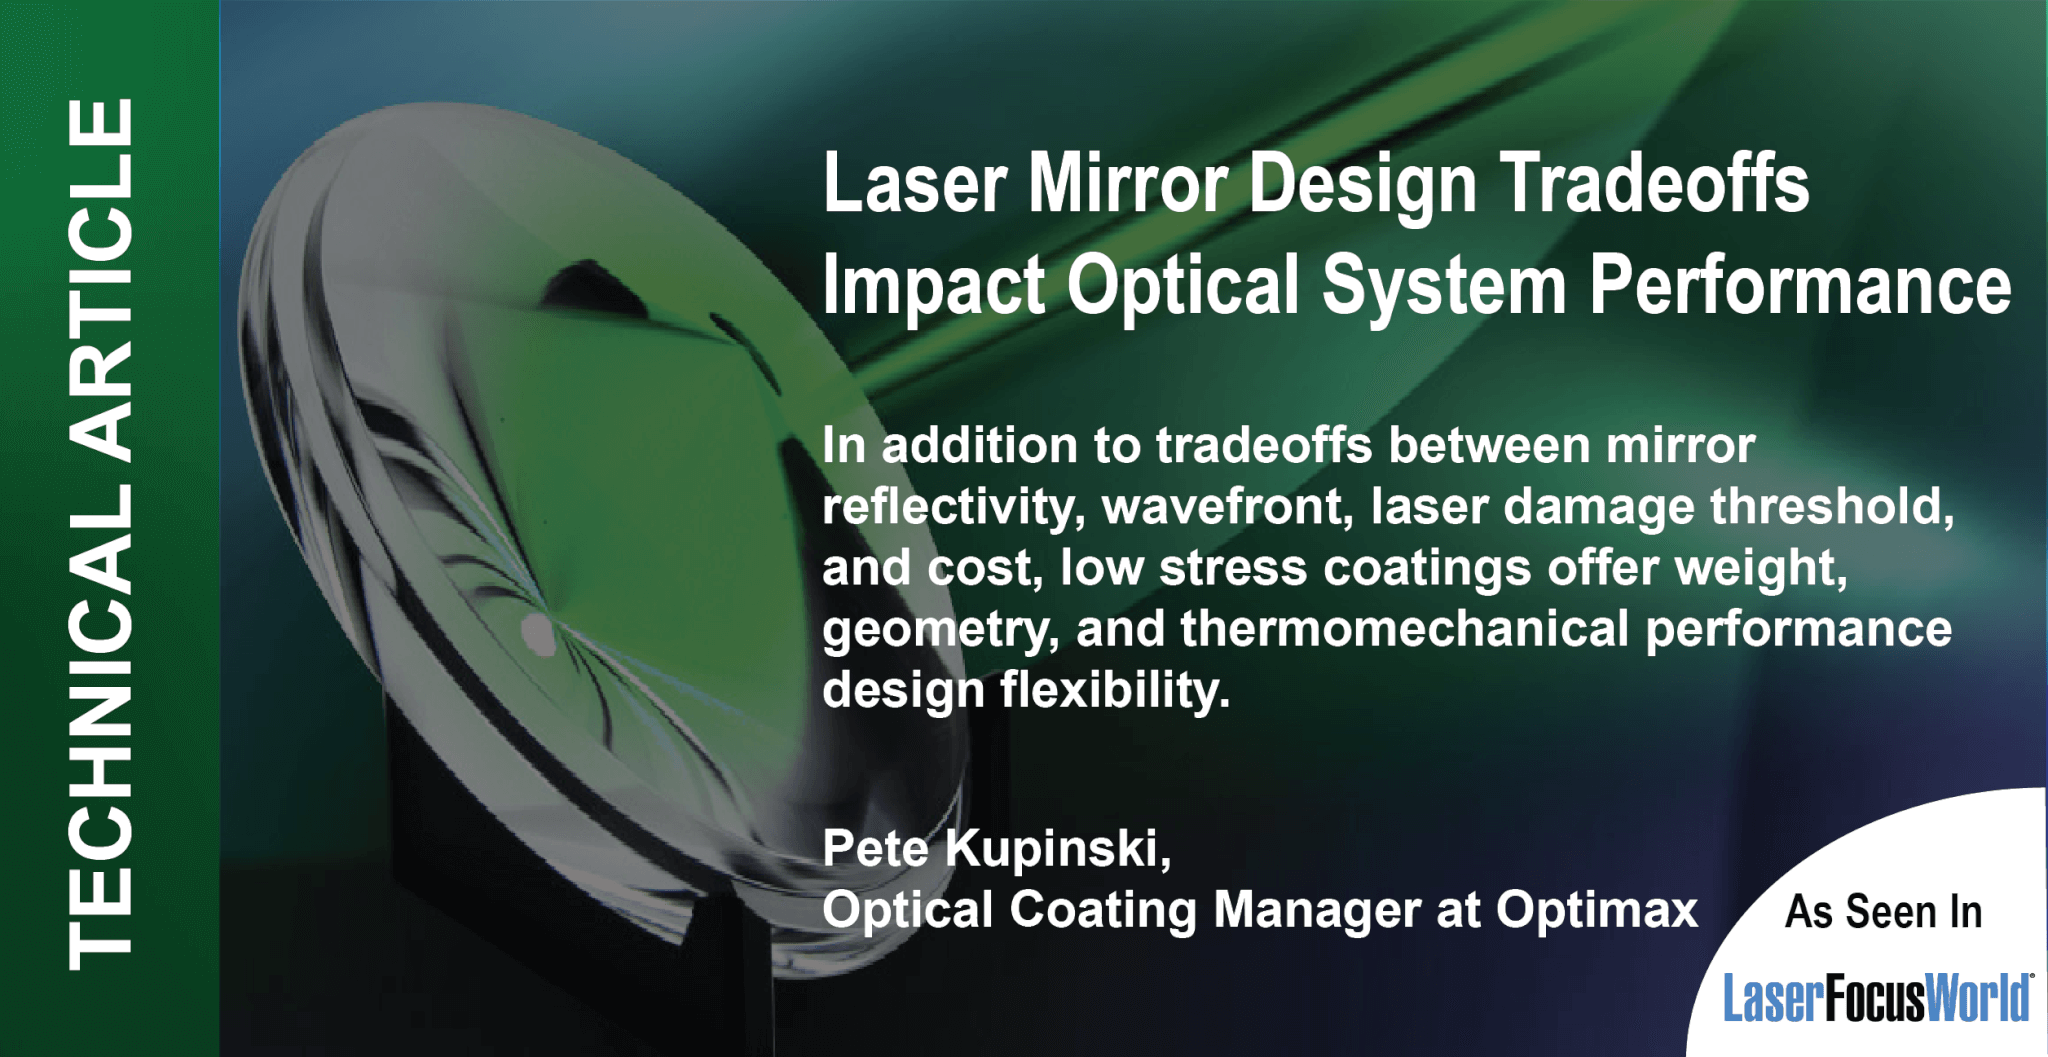 Laser mirror design tradeoffs impact optical system performance LFW technical article